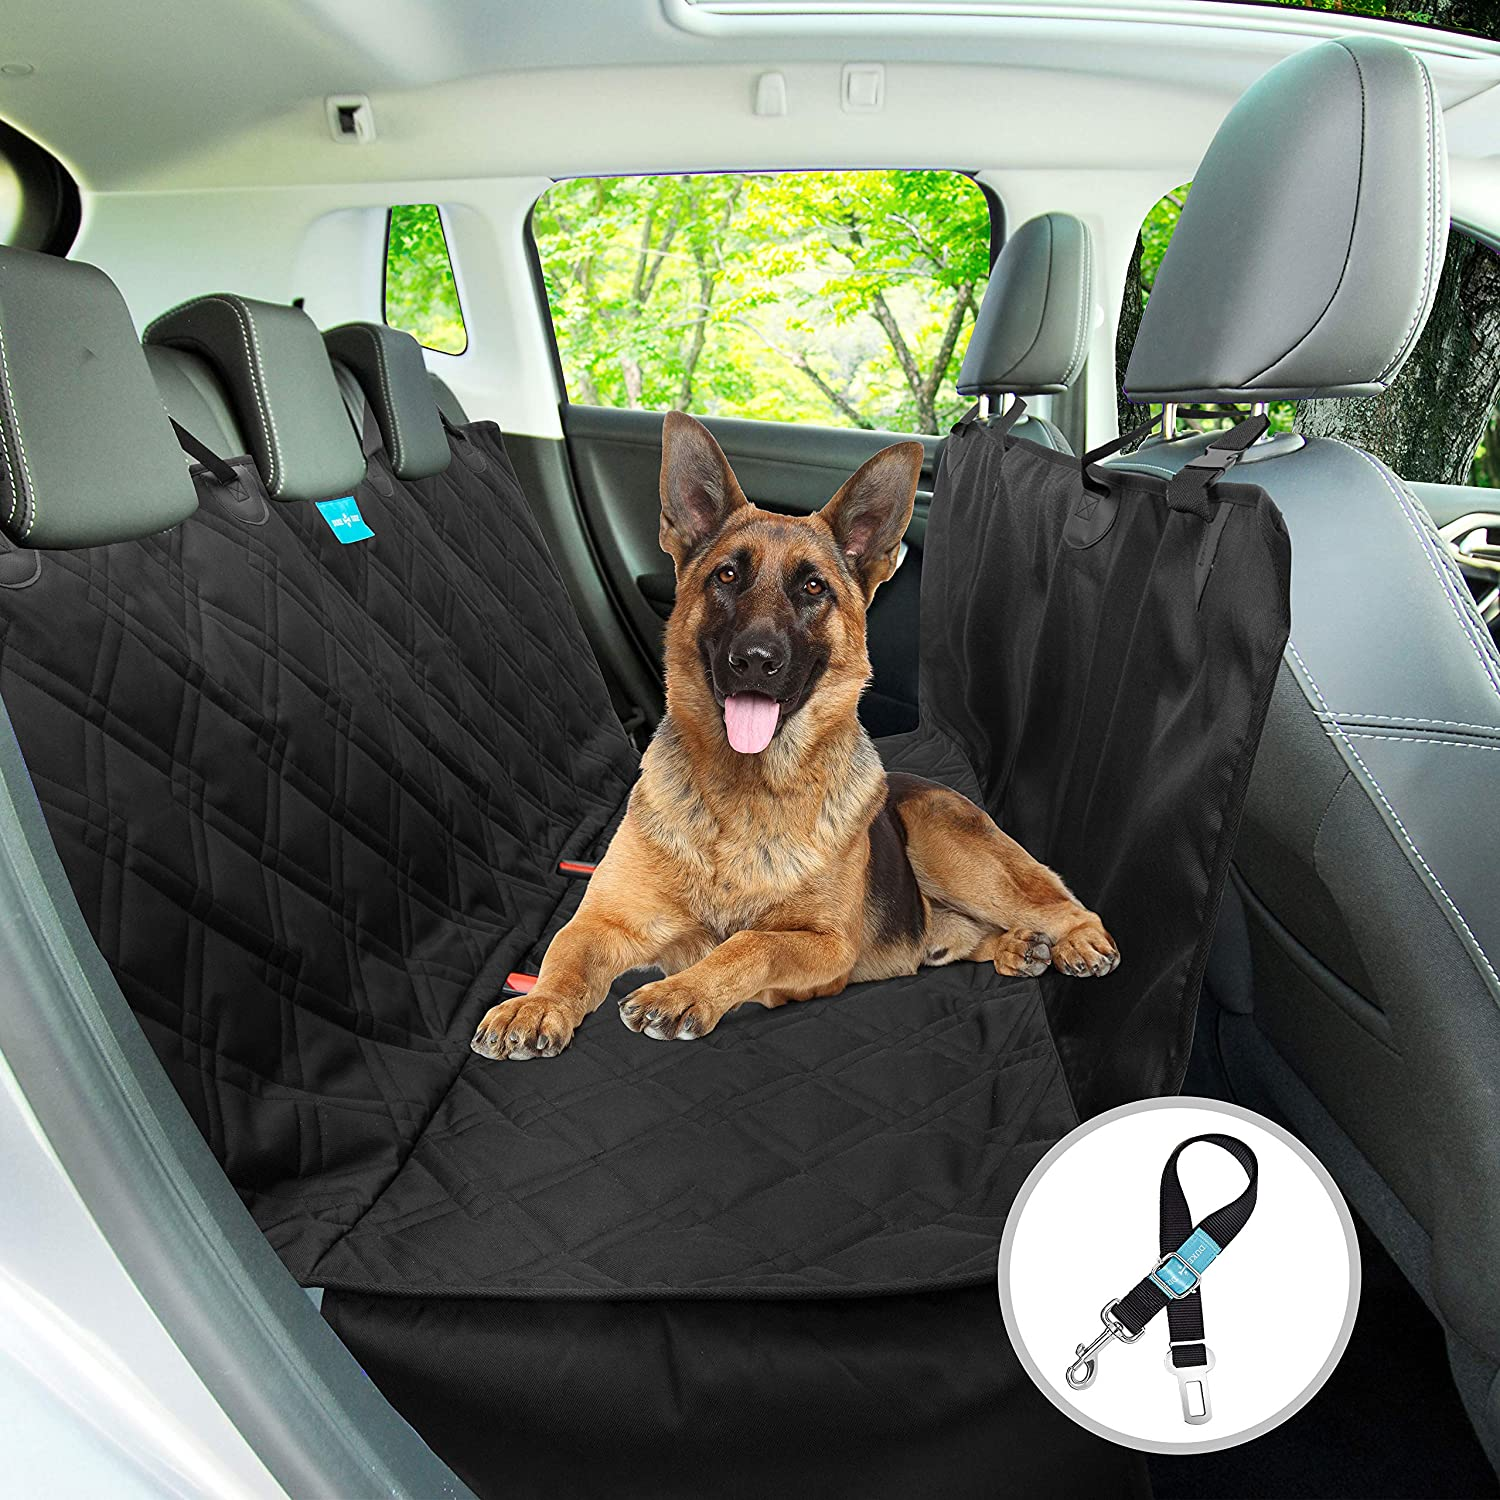 Hammock Dog Backseat Hammock Seat Cover Style 2 in 1, Durable, Wateproof, Non Slip Rubber Backing with Anchors Washable for Trucks Cars suv's